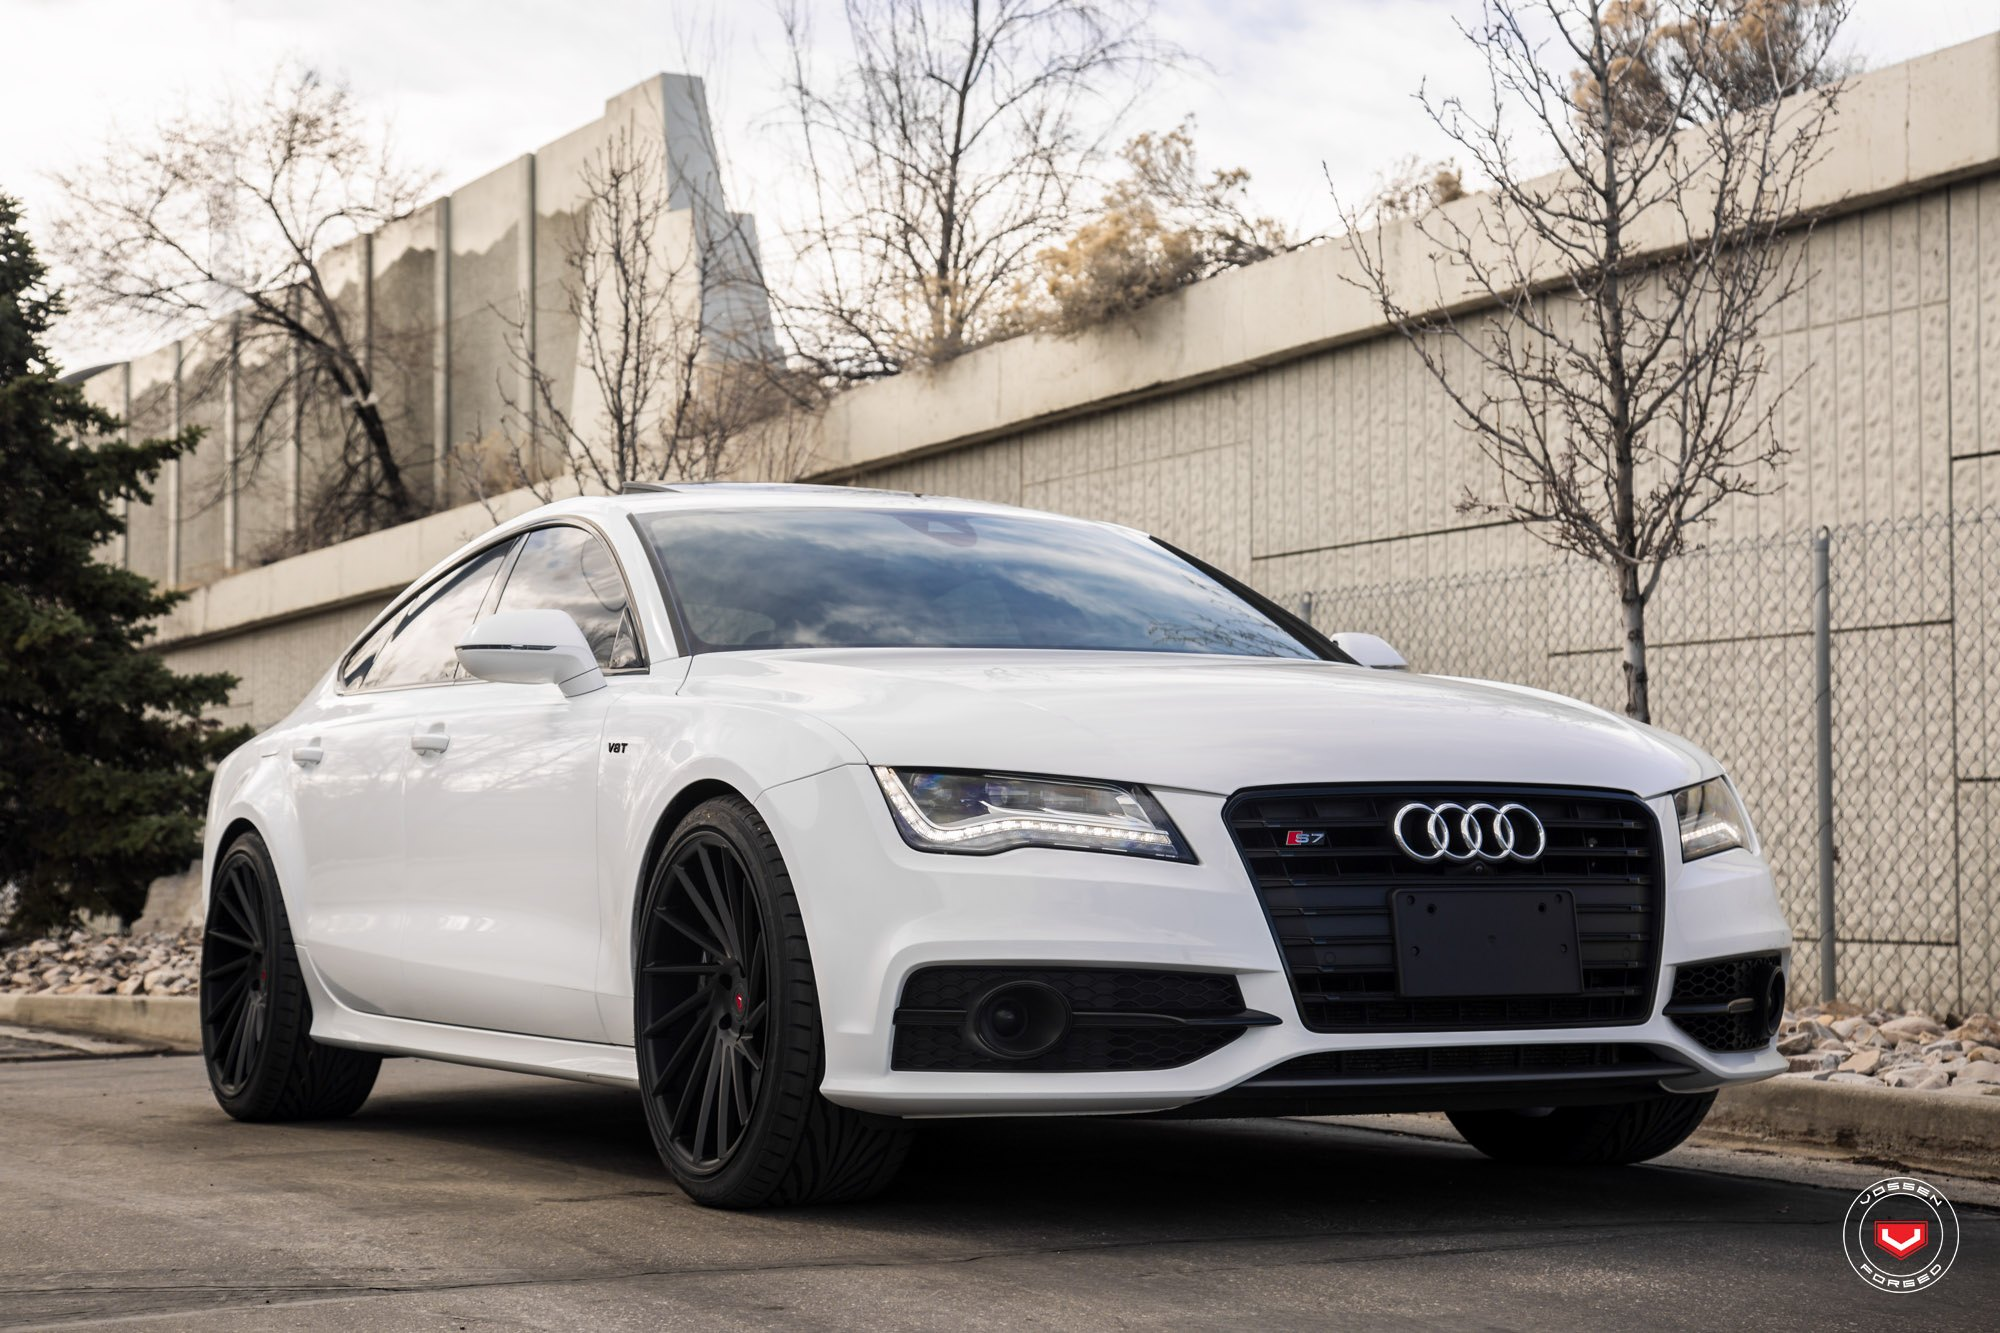 Audi S7 Adorned With Custom Grille Led Tail Lights And Vossen Rims